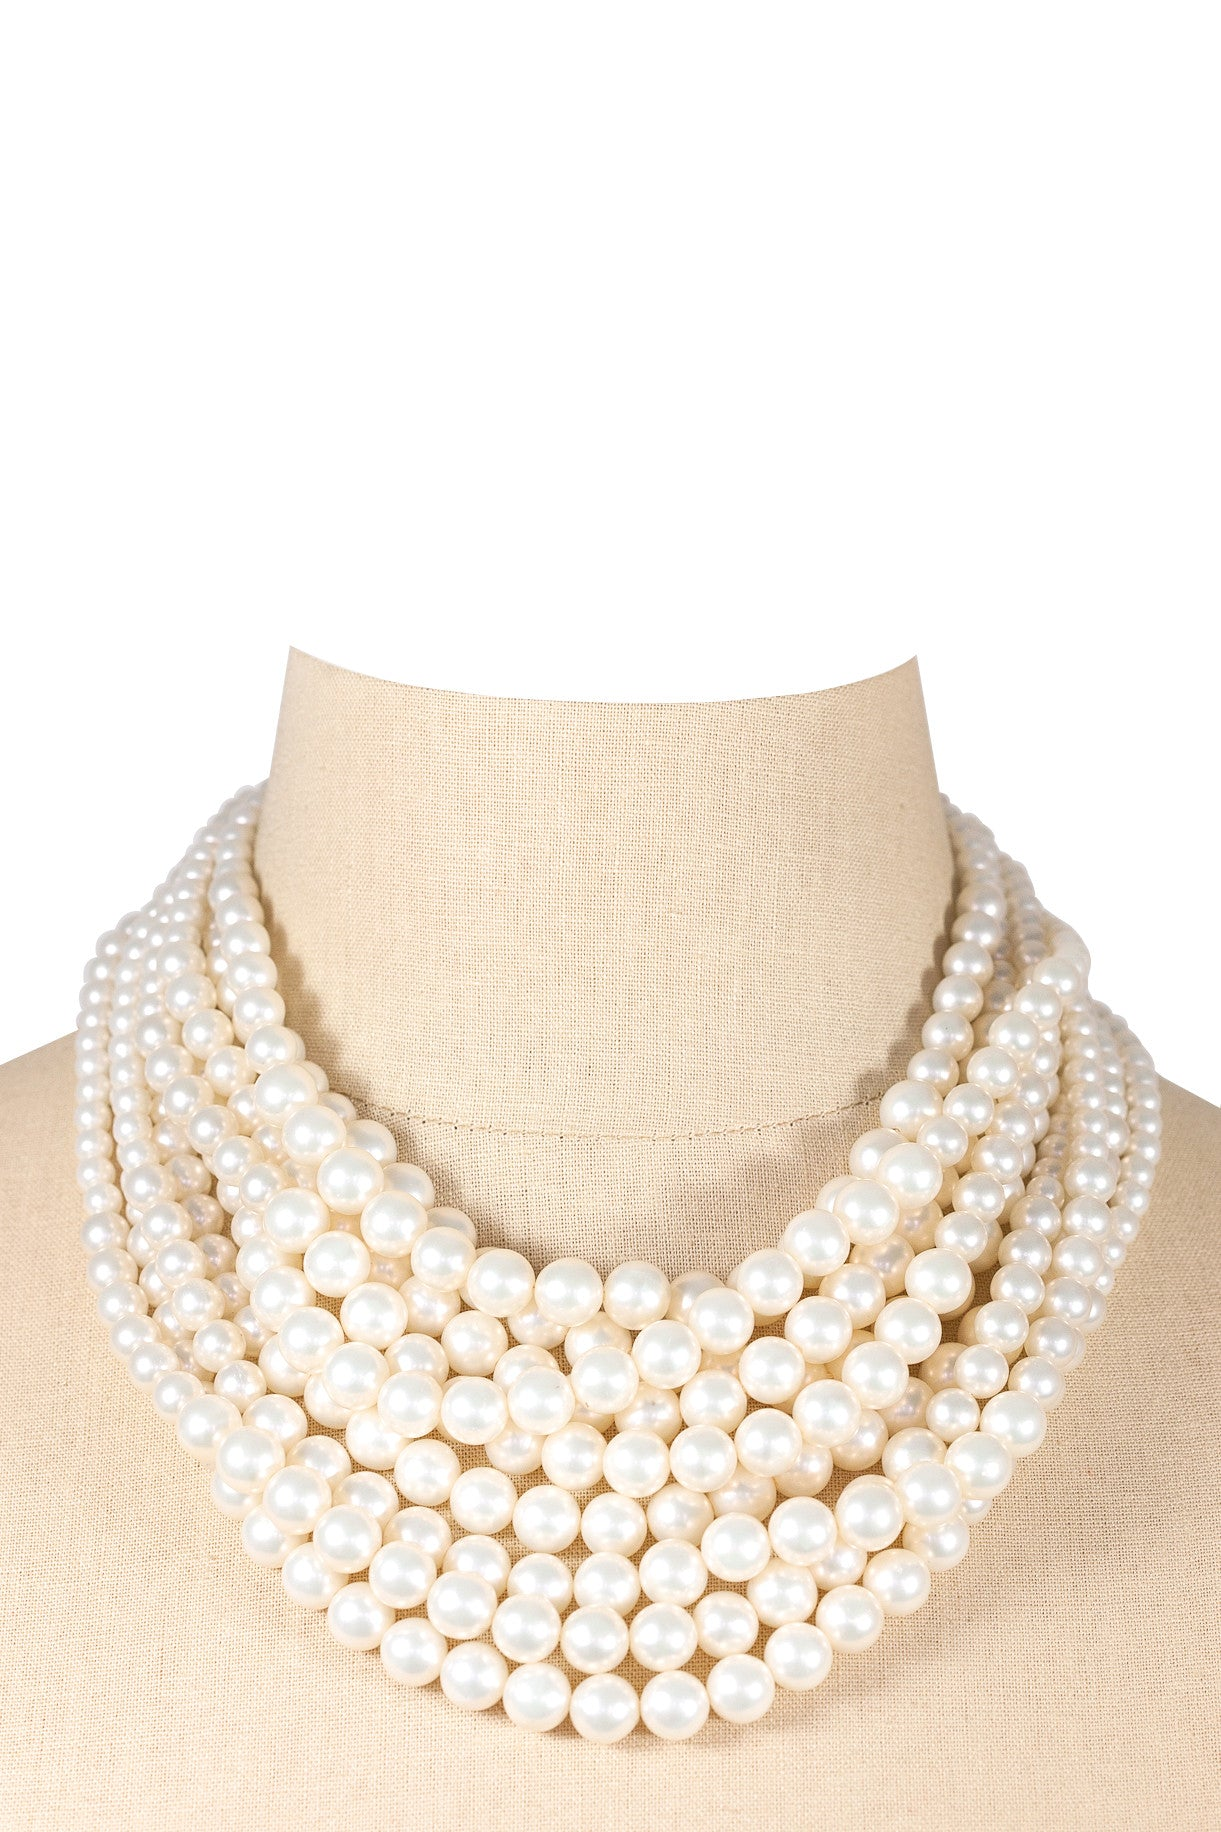 50's__Vintage__Statement Pearl Necklace